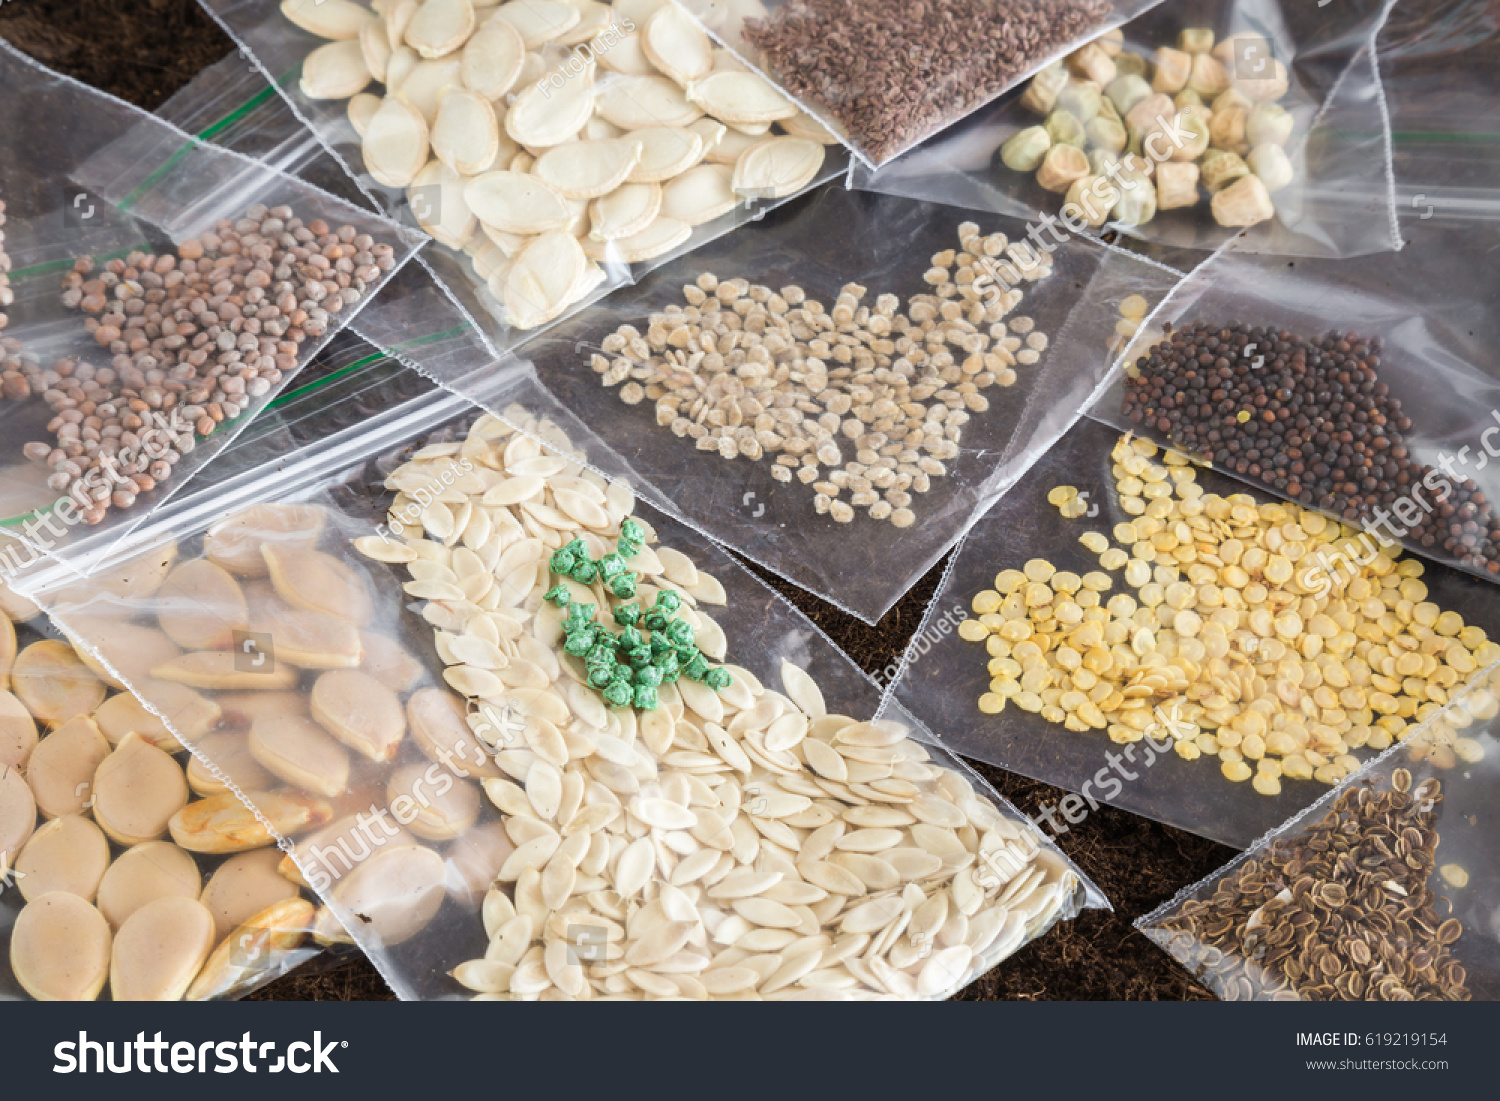 Packets of different seeds. Planting time. Early spring preparations for the garden season. Paprika, tomato, pumpkin, courgette, cabbage, radish, beet, peas, carrot and dill seeds. #619219154